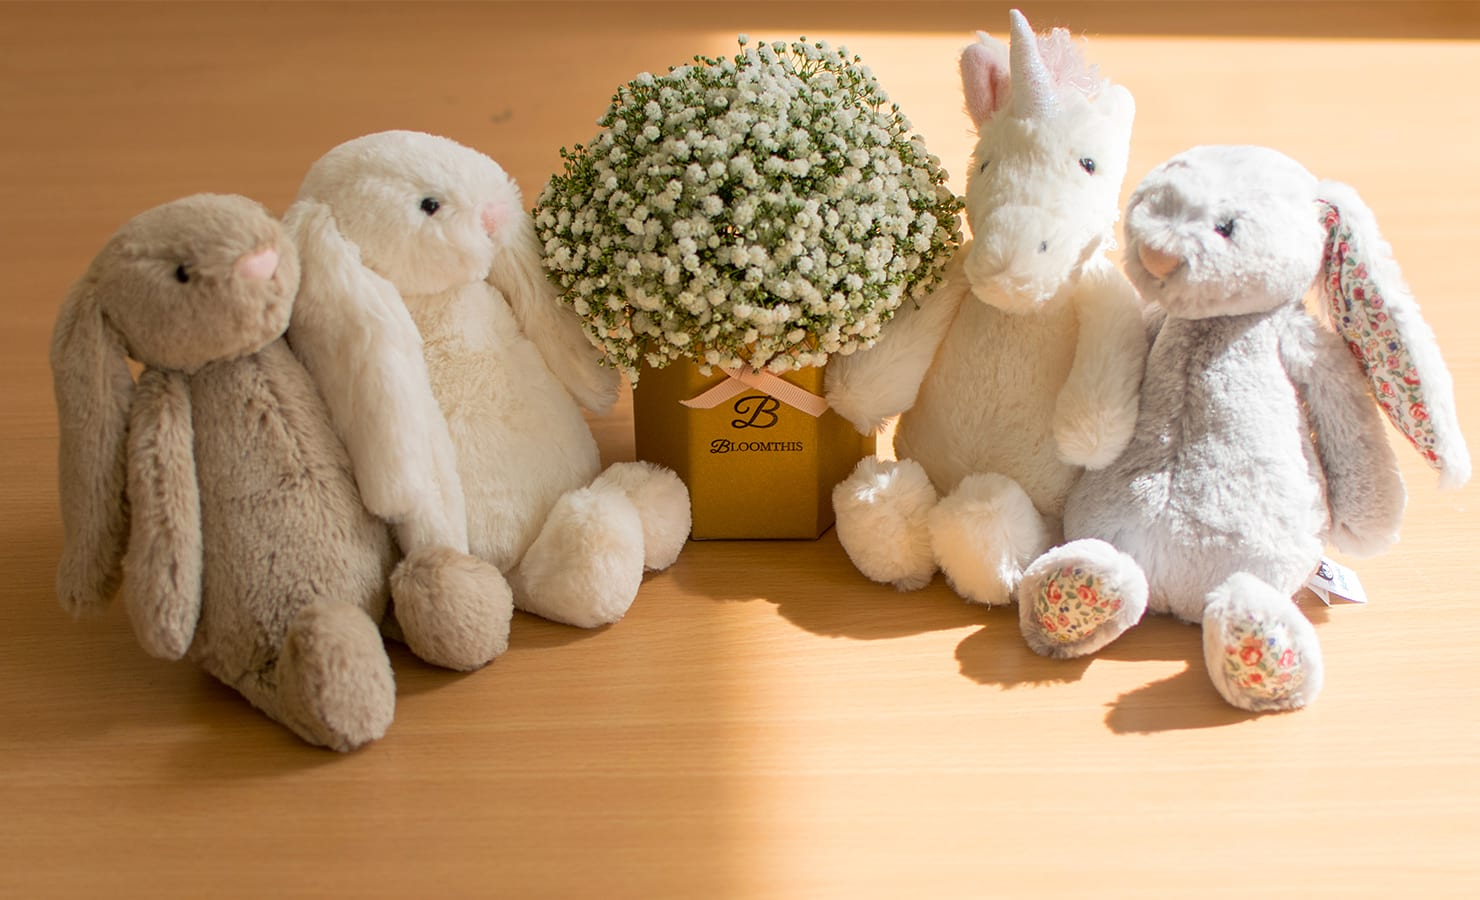 bloomthis-qixi-festival-gift-guide-2021-12-jellycat-bashful-cream-bunny-m-size